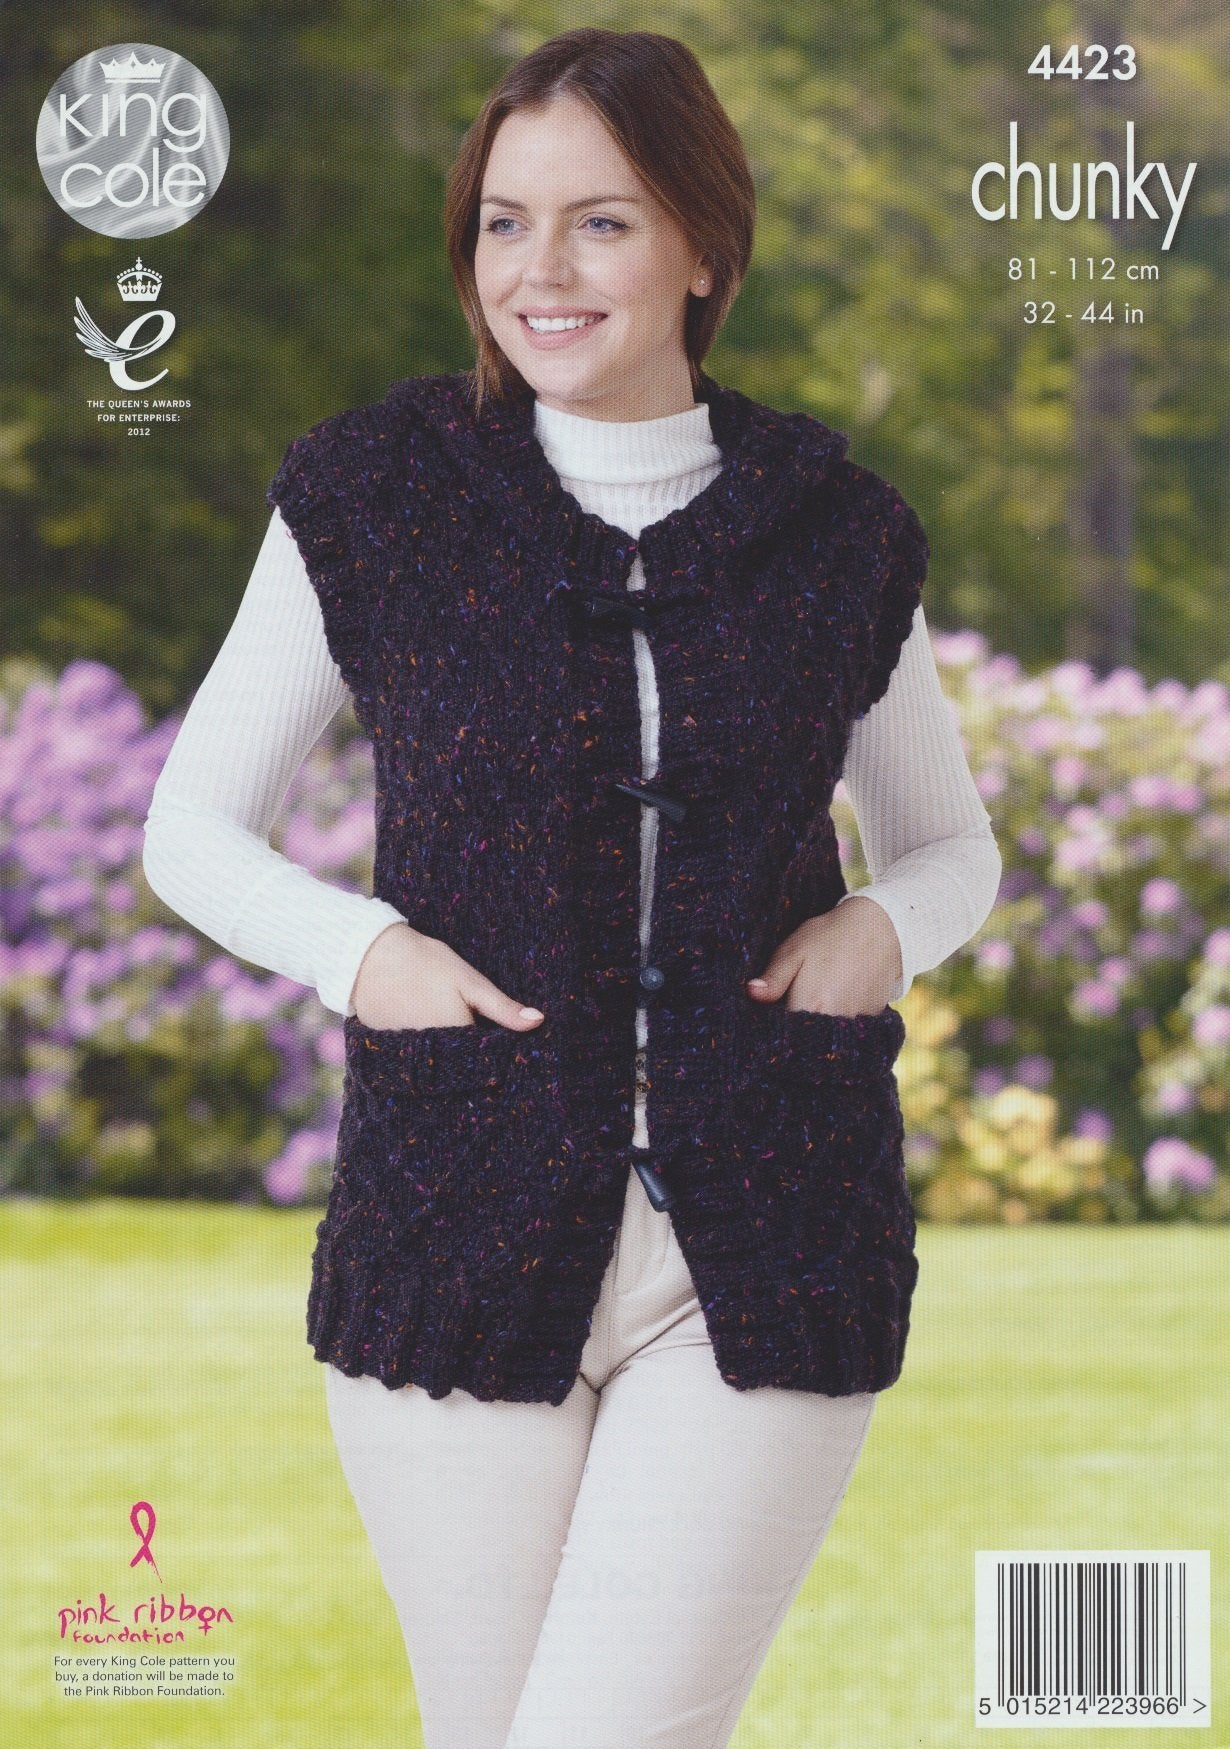 Jacket And Gilet In King Cole Chunky Tweed 4423 Deramores